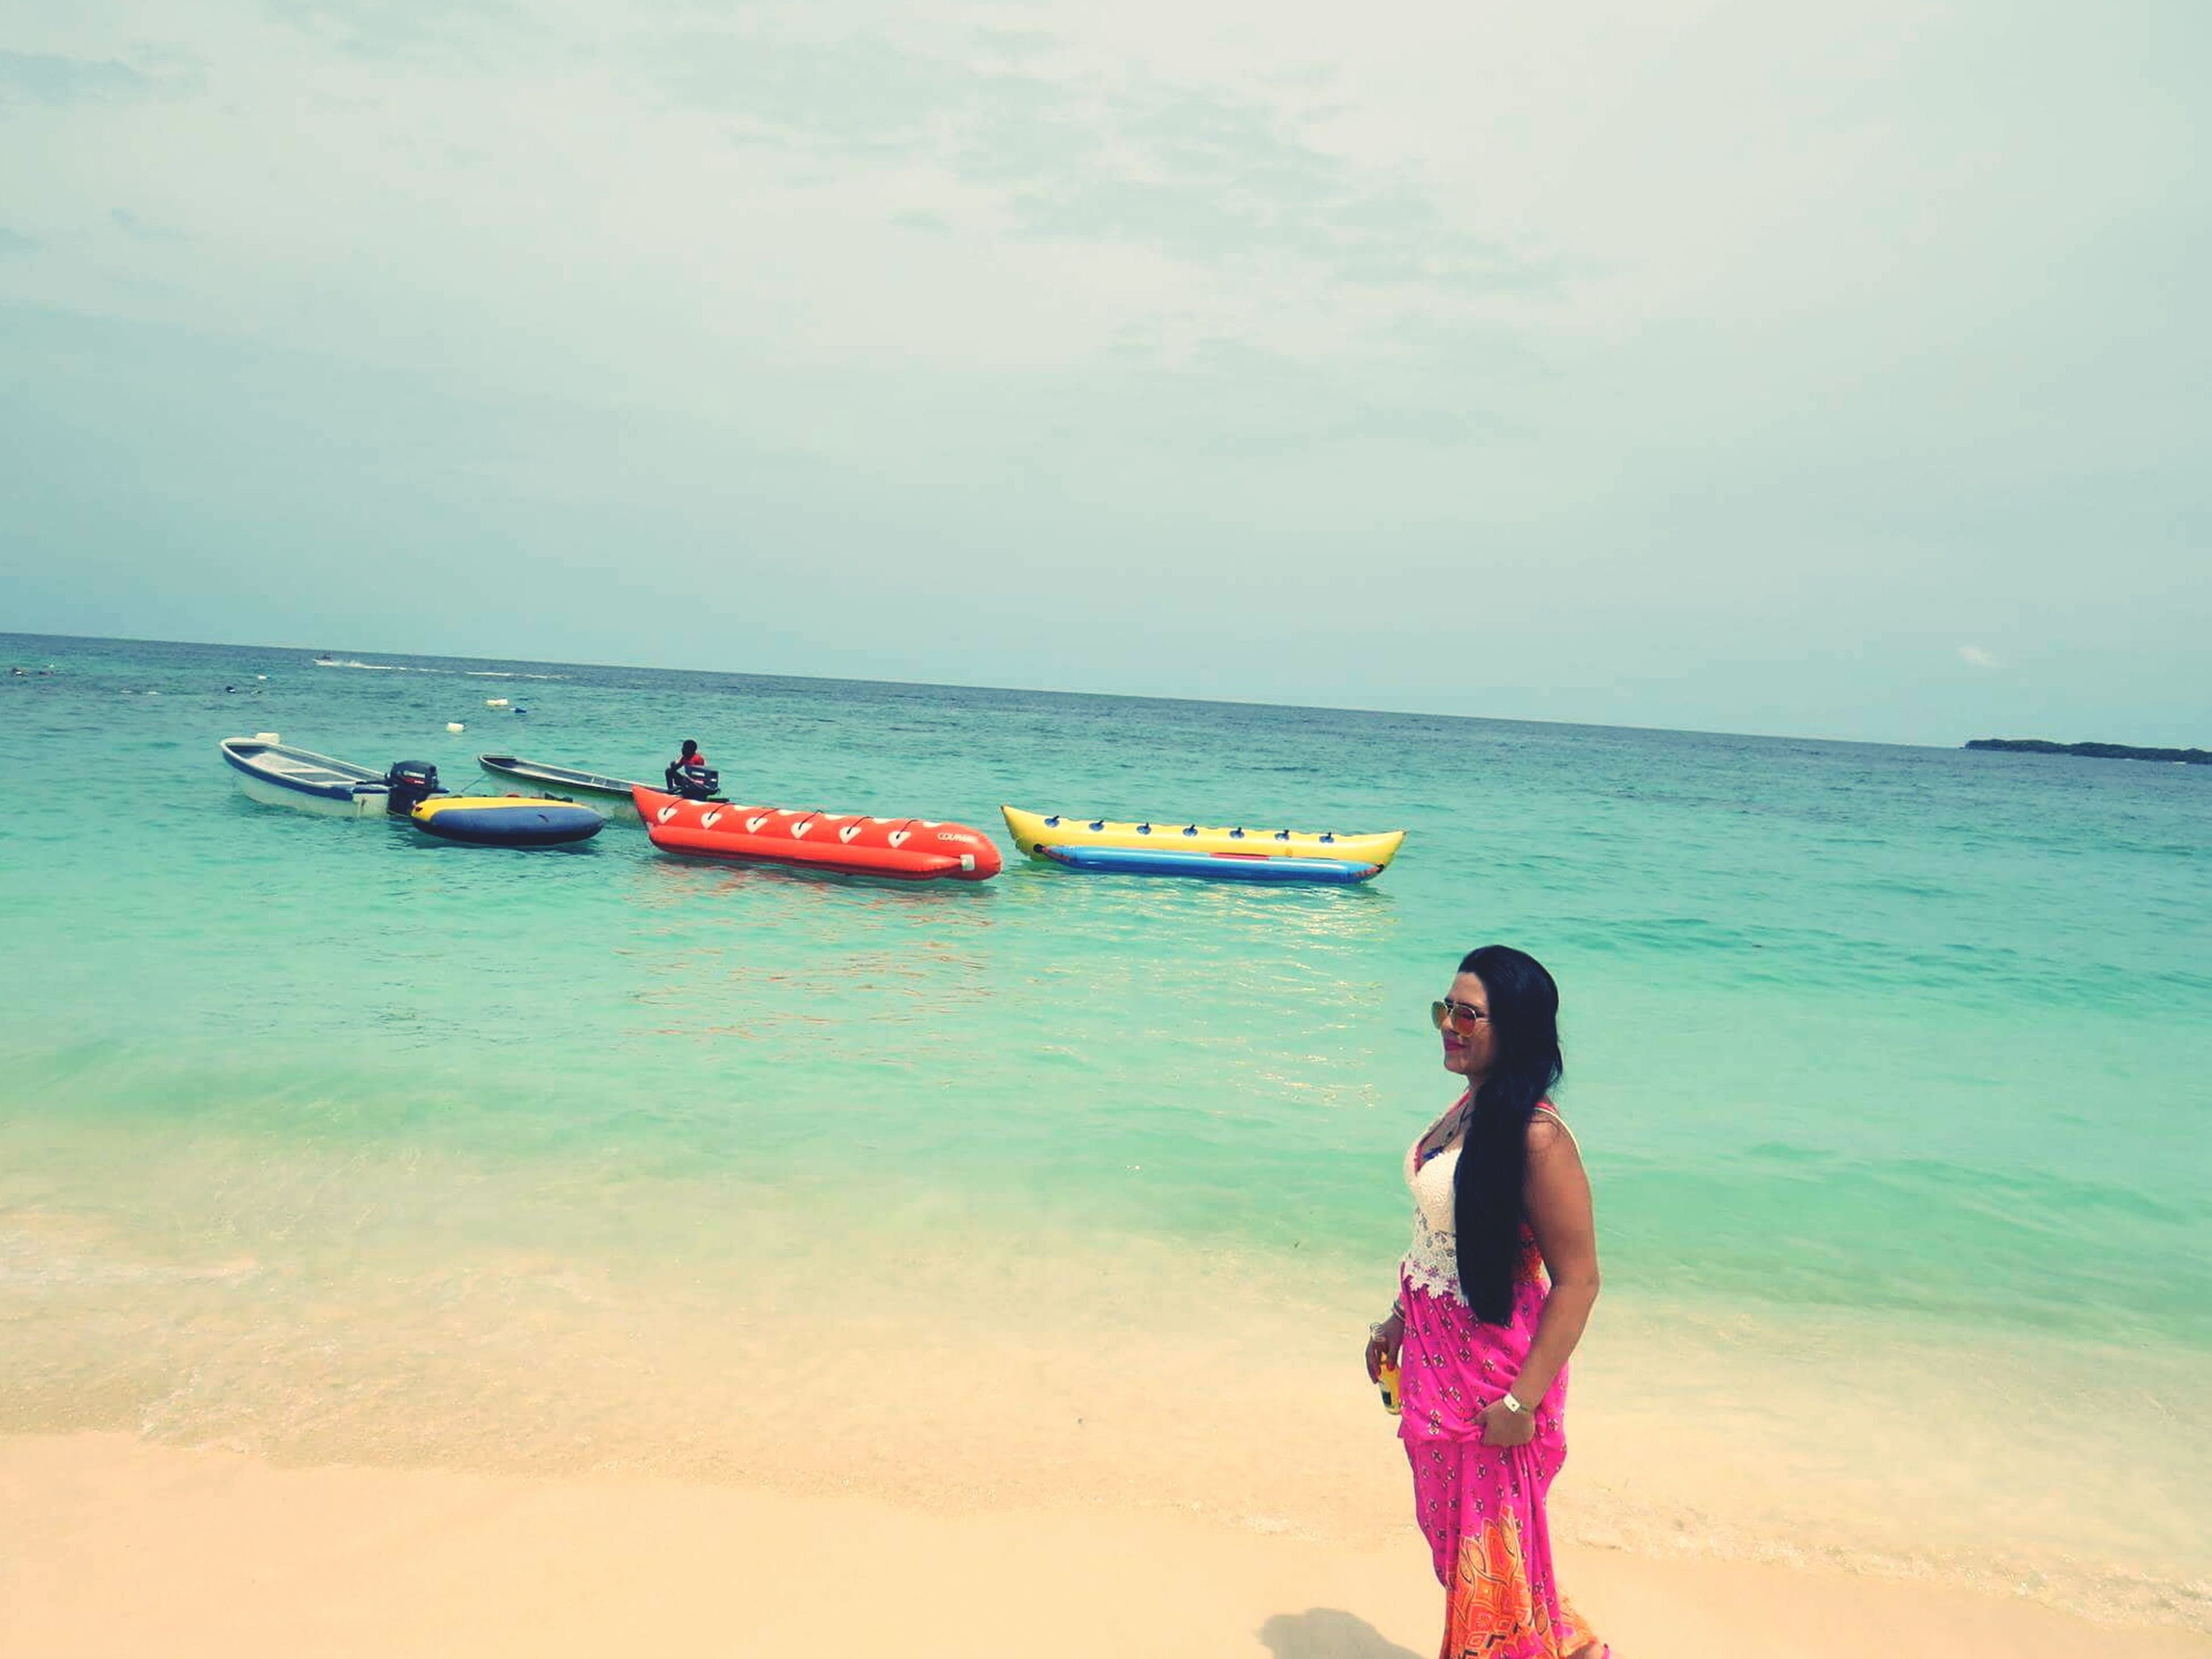 sea, horizon over water, beach, water, leisure activity, shore, nautical vessel, lifestyles, sand, transportation, casual clothing, standing, scenics, boat, three quarter length, tranquil scene, sky, beauty in nature, person, vacations, nature, wave, tranquility, non-urban scene, enjoyment, day, young adult